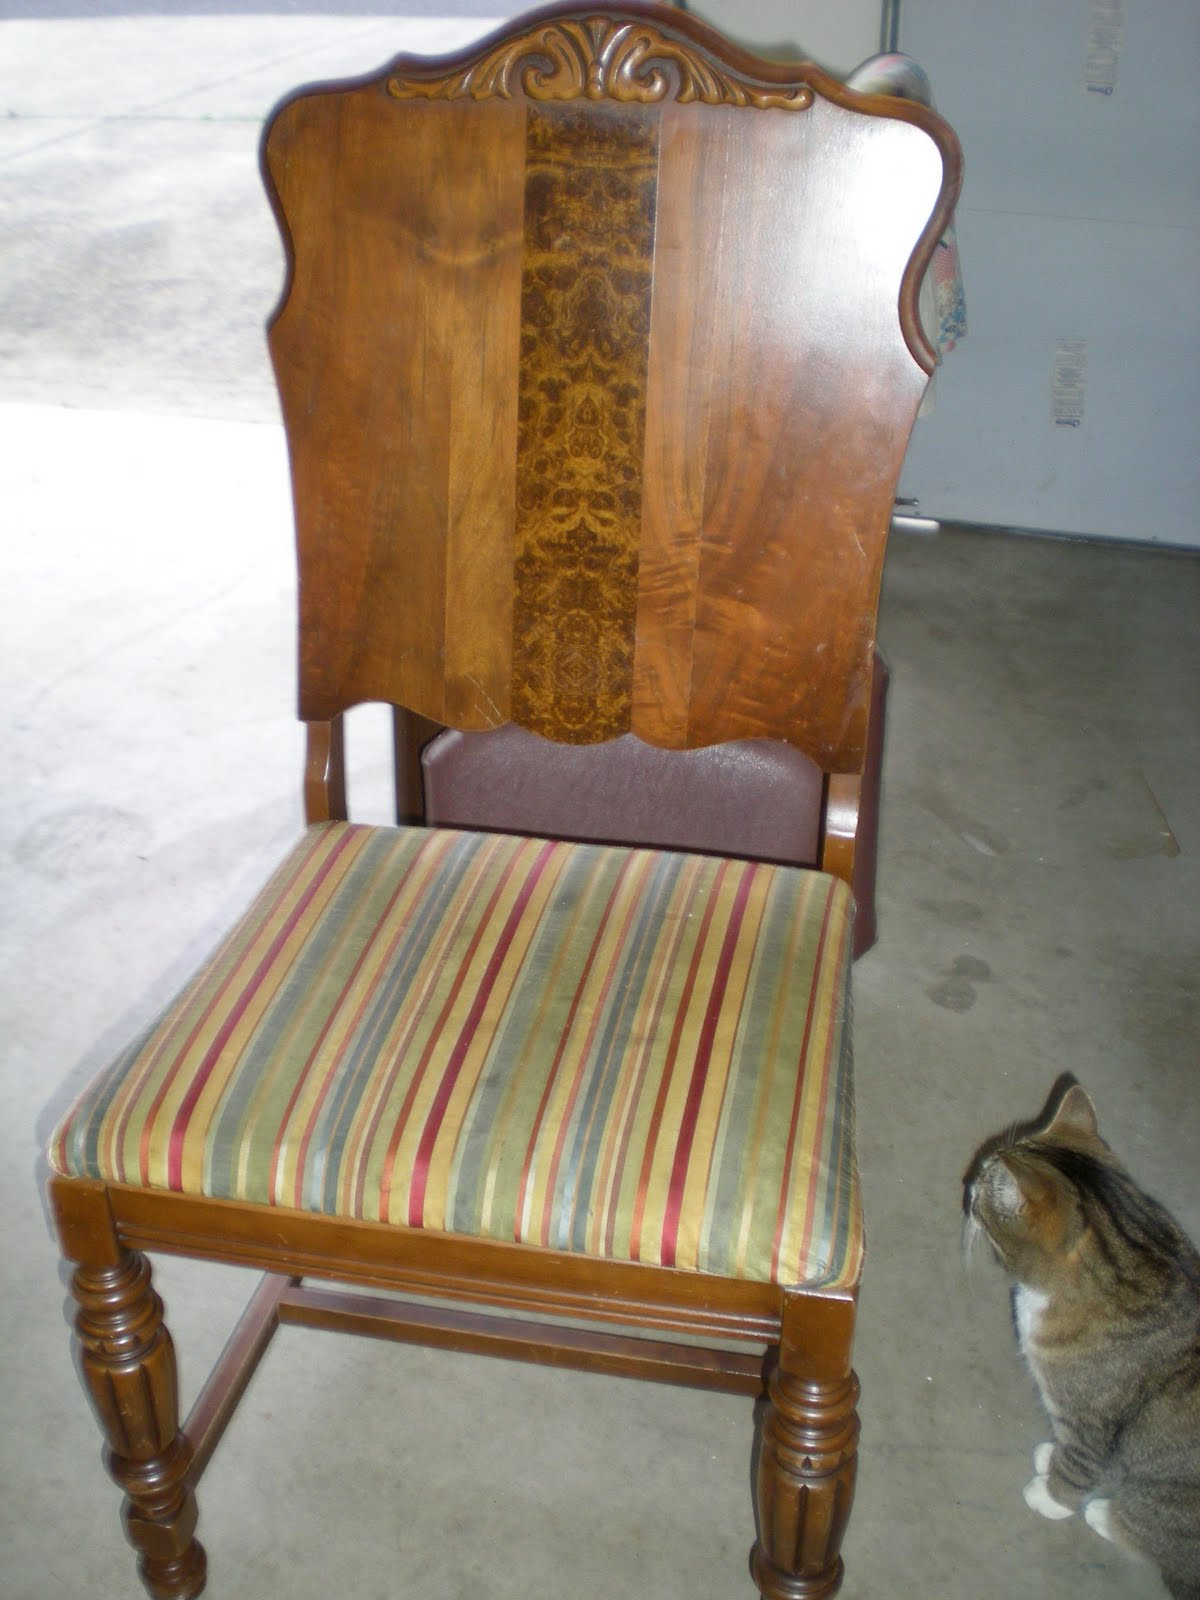 saltbox treasures: DIY: How to reupholster a chair seat ...